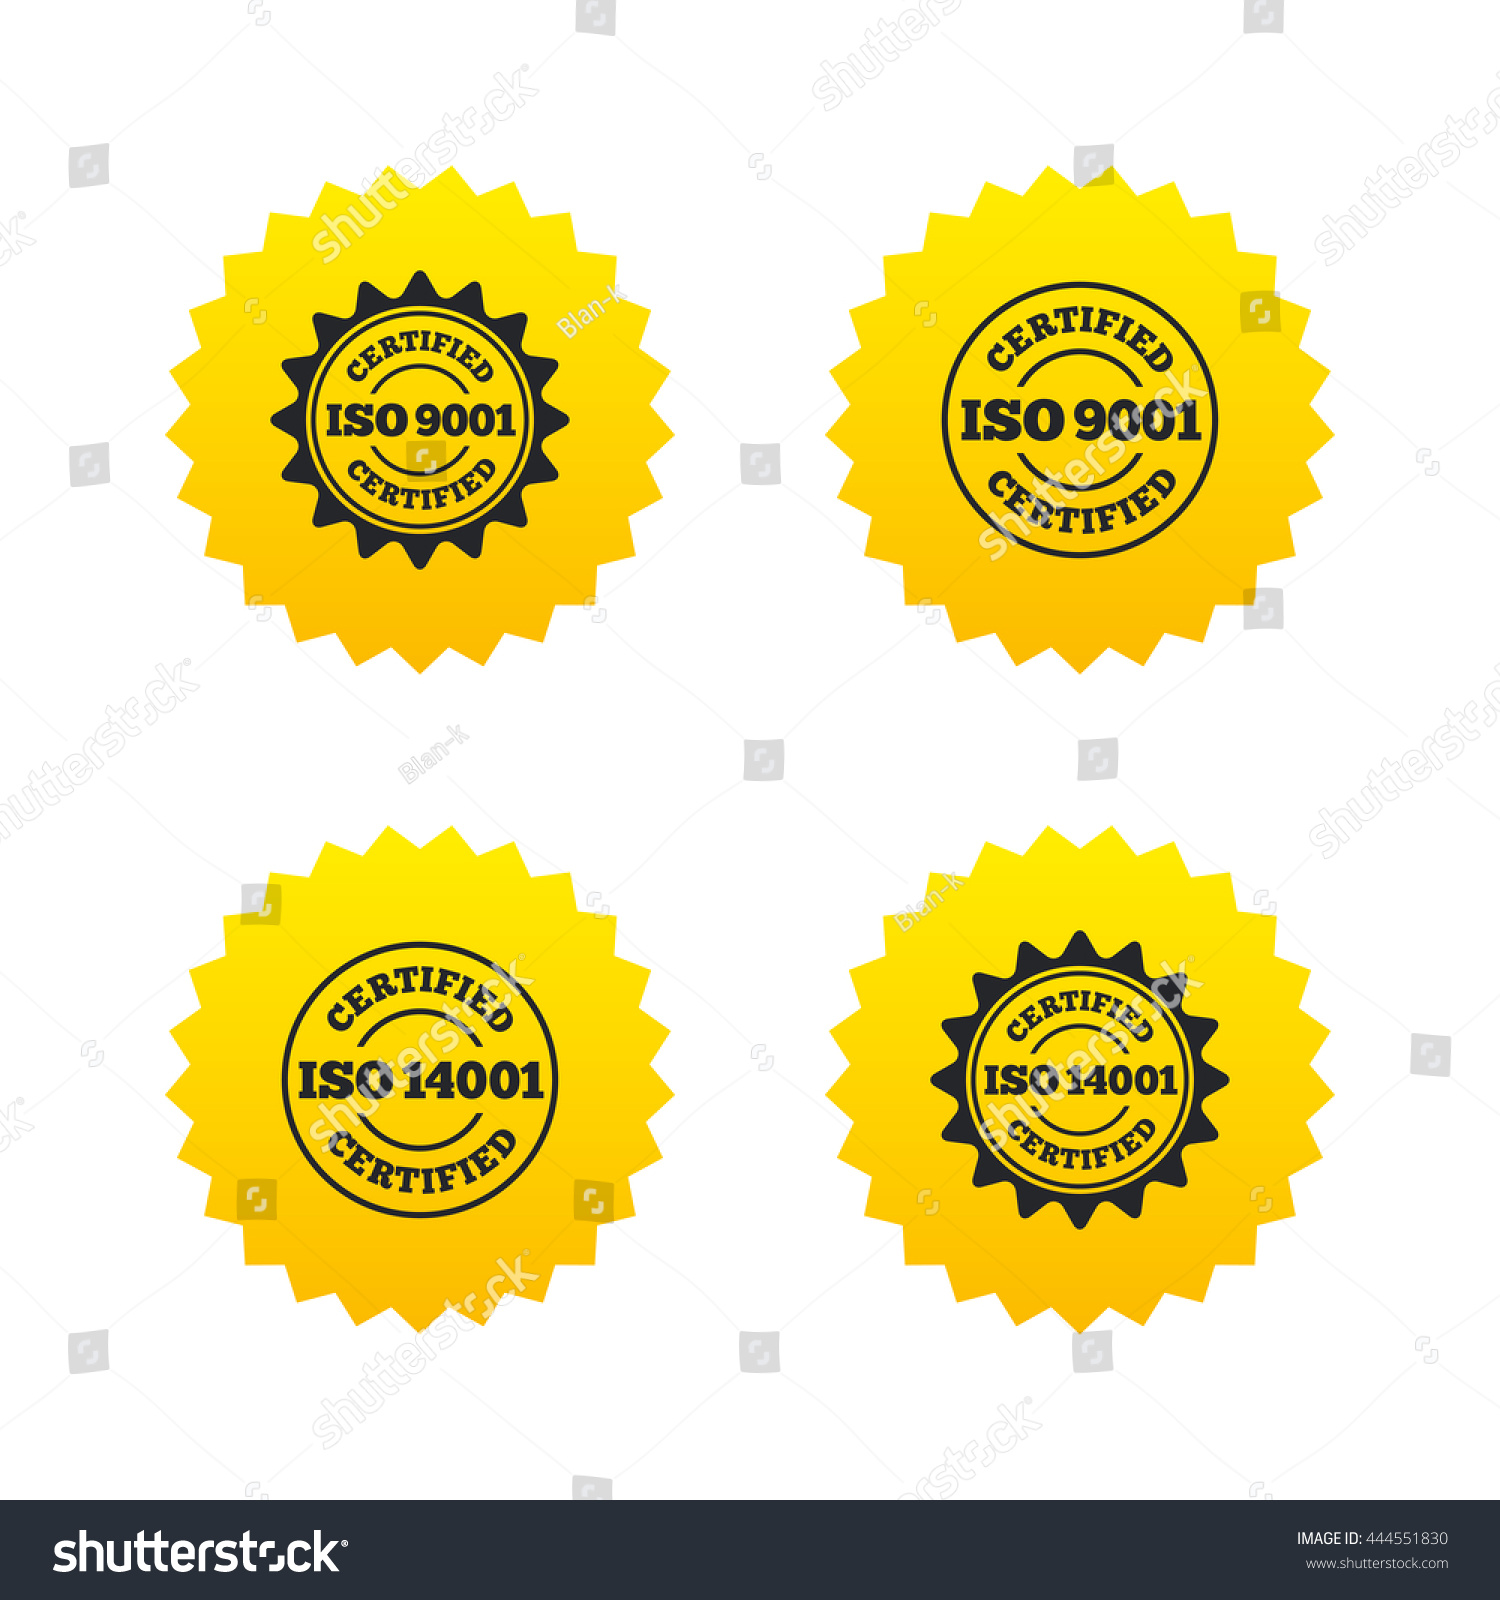 Iso 9001 14001 certified icons certification stock vector iso 9001 and 14001 certified icons certification star stamps symbols quality standard signs buycottarizona